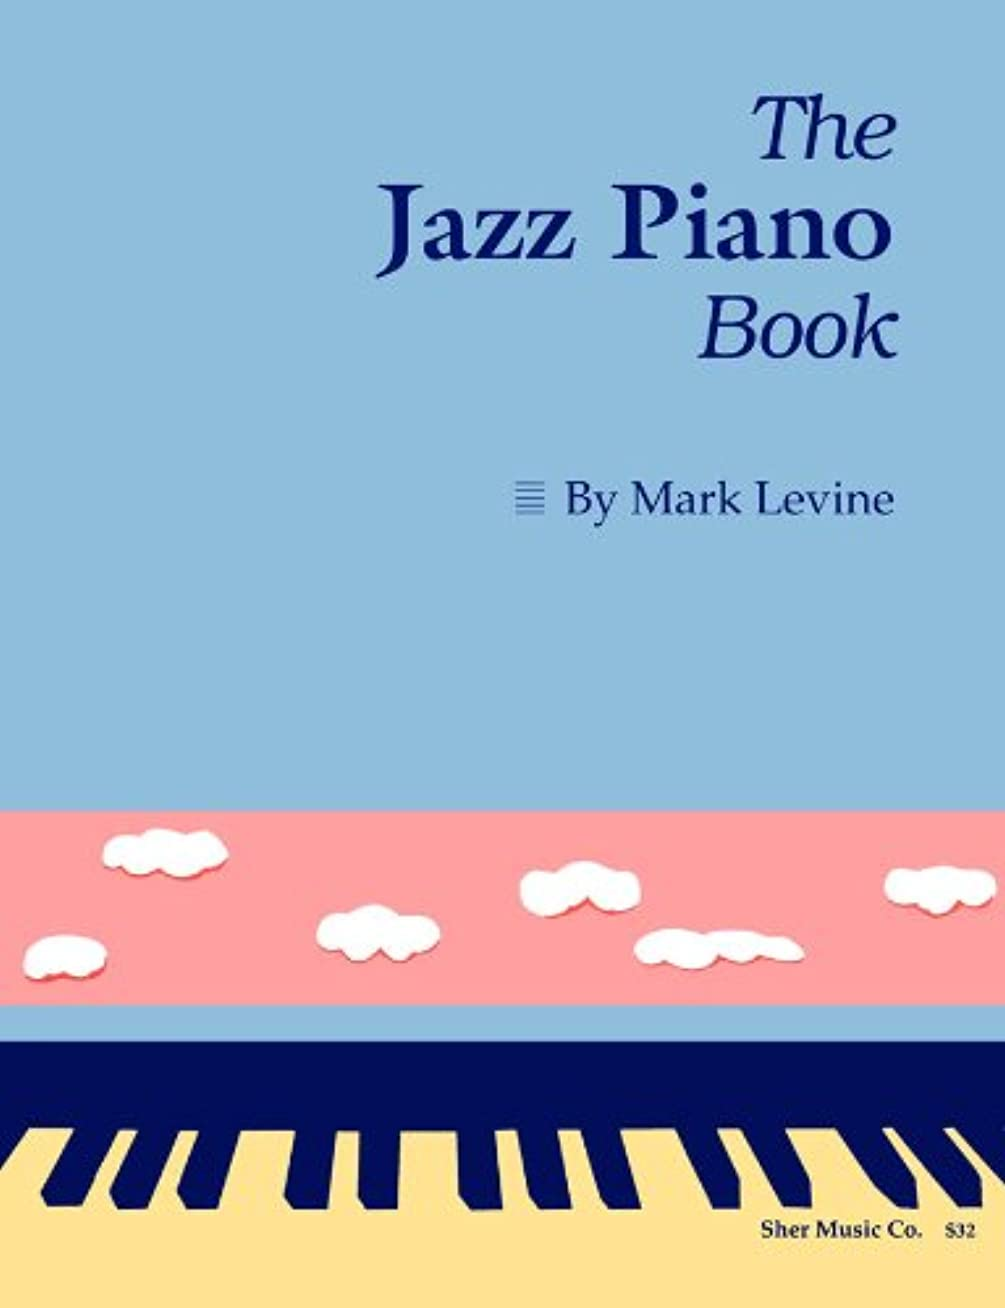 変形明示的に膜The Jazz Piano Book (English Edition)